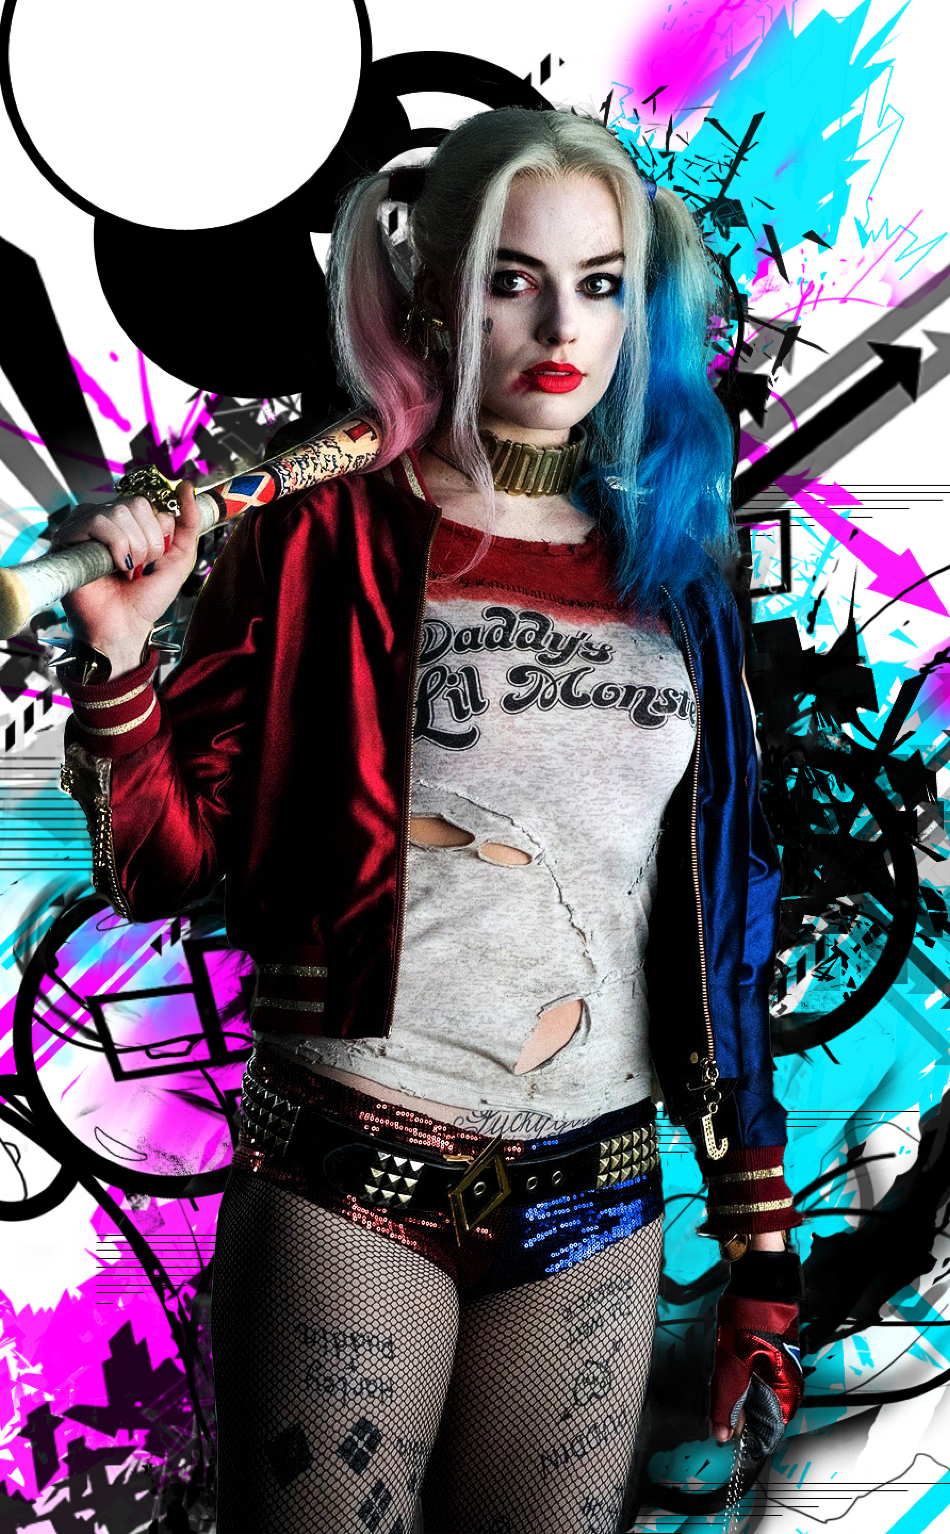 Harley quinn full hd 2k wallpaper - Harley quinn hd wallpapers for android ...